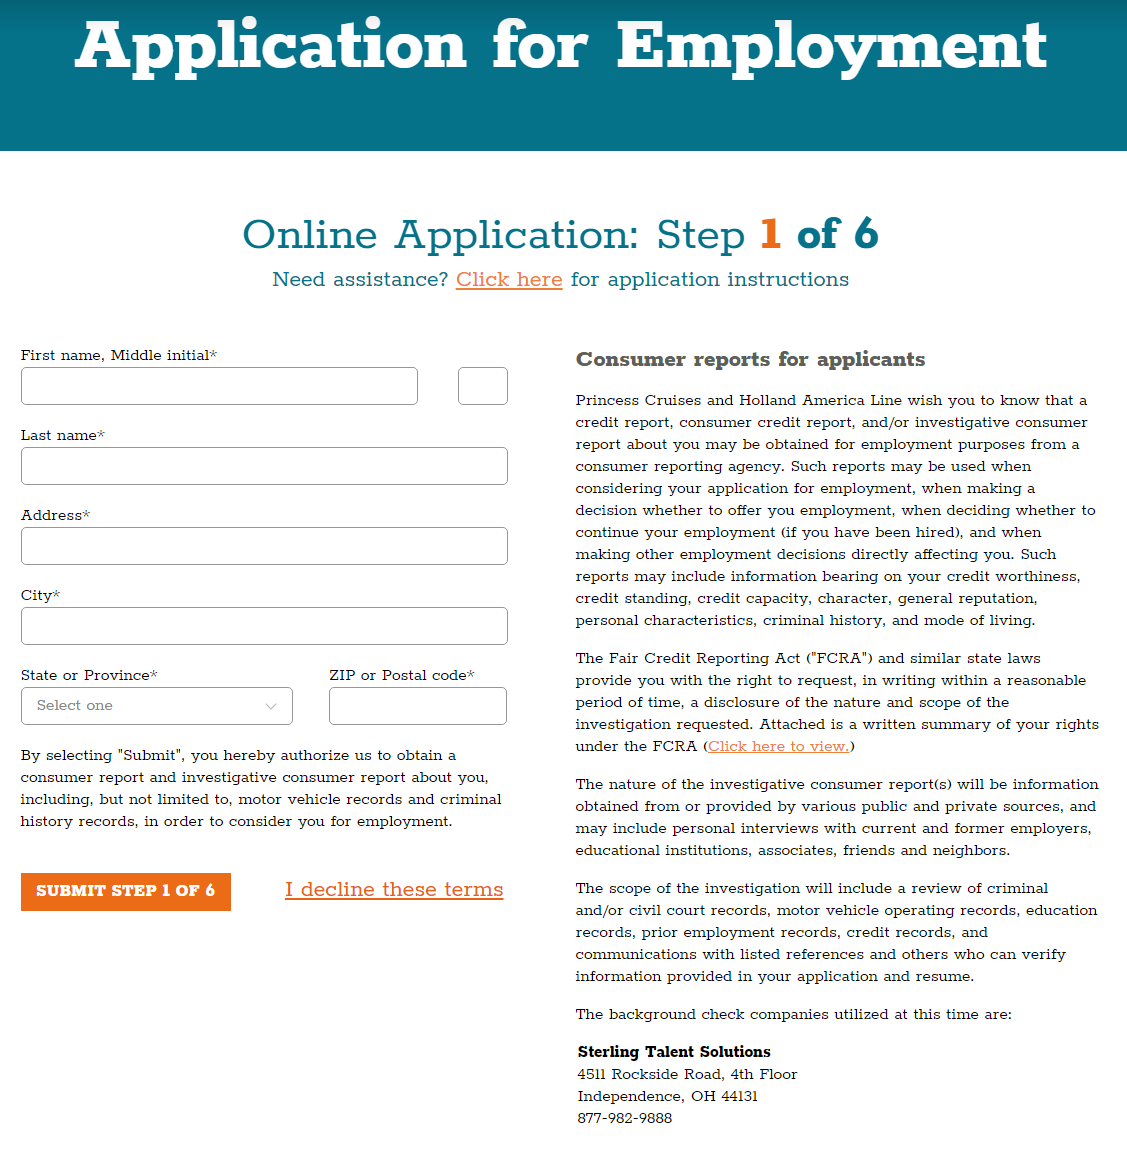 Application for Employment Step 5